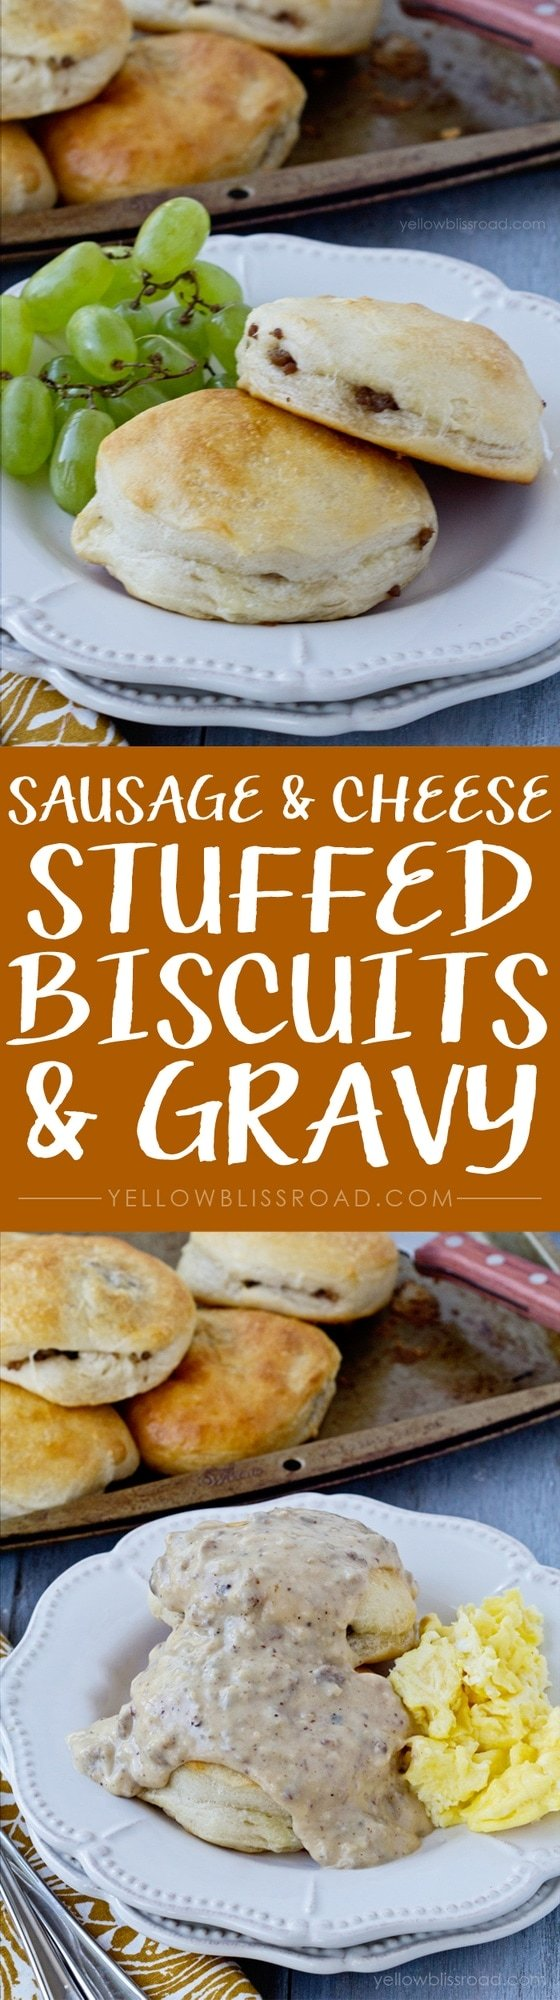 Sausage and Cheese Stuffed Biscuits and Gravy